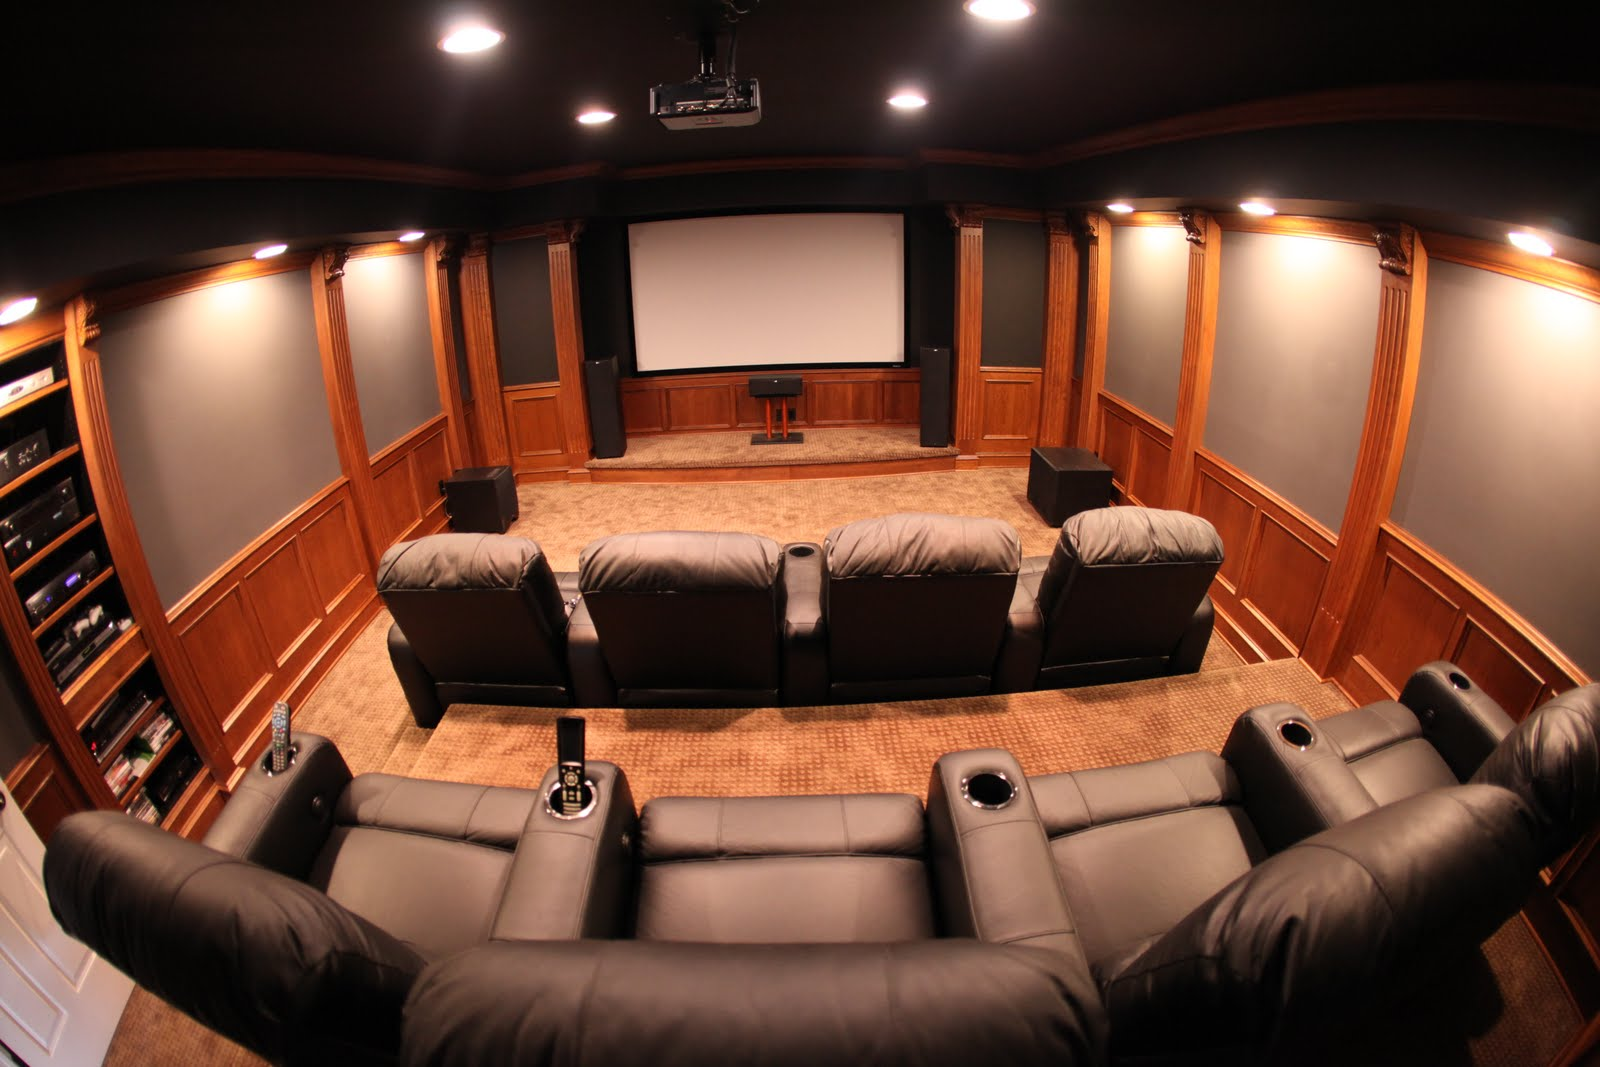 Mhi interiors theater room novi mi Theater rooms design ideas